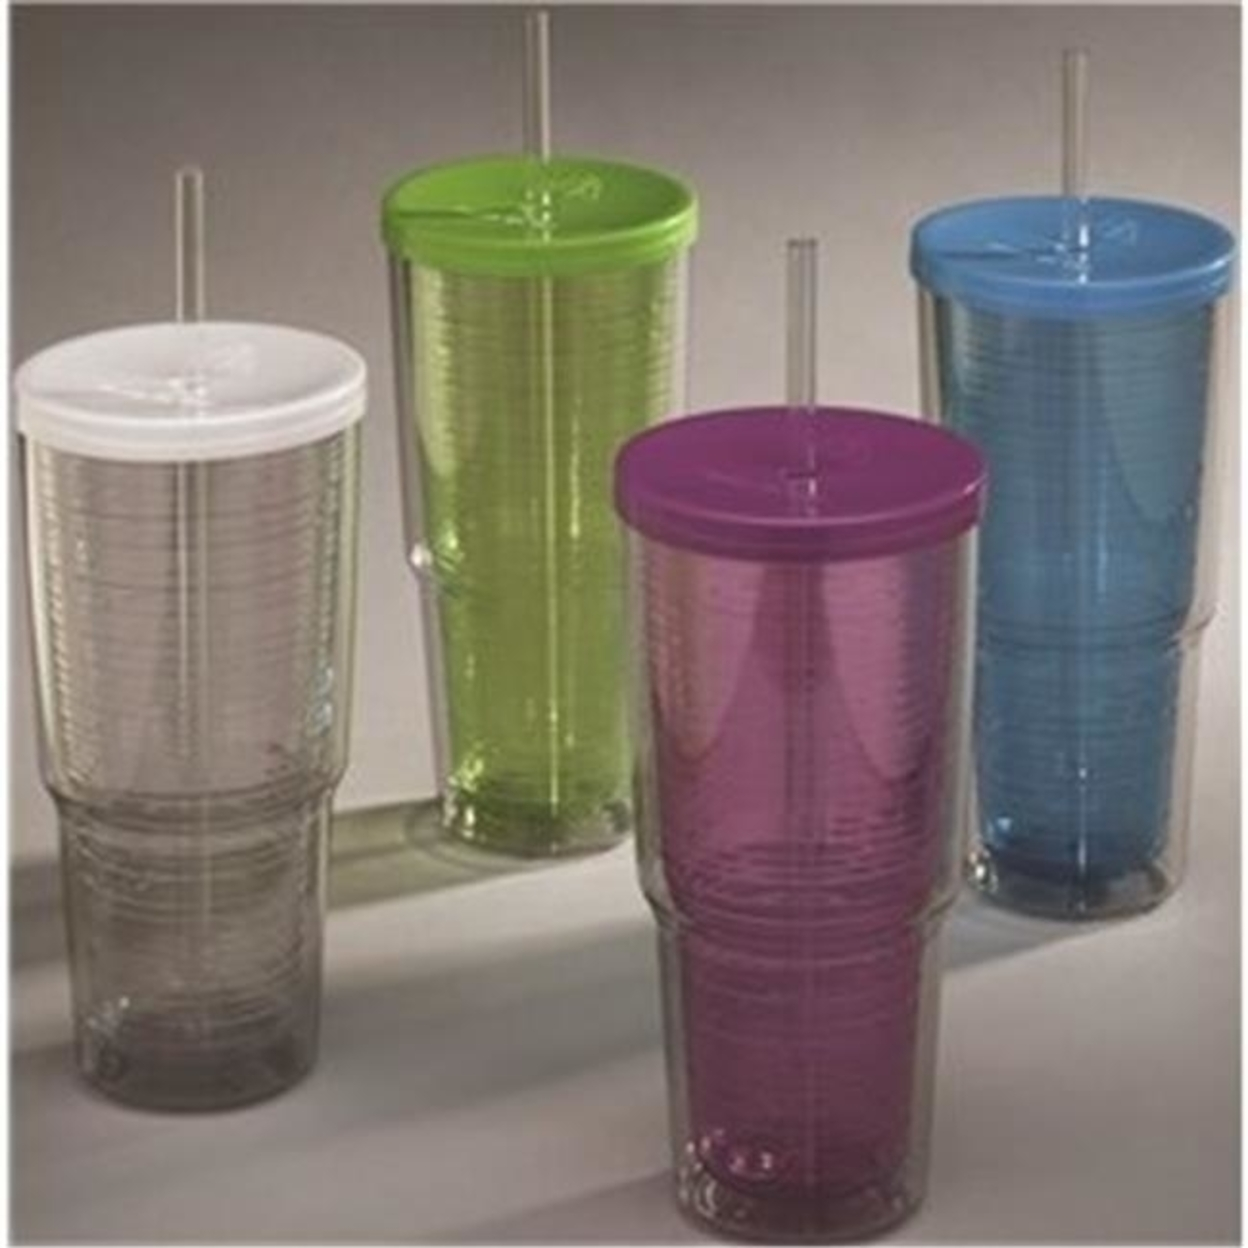 Arrow Plastics Mfg. 00015 24 oz. Tumbler Double Wall Pack Of 8 596e4c982a00e46c21426ace